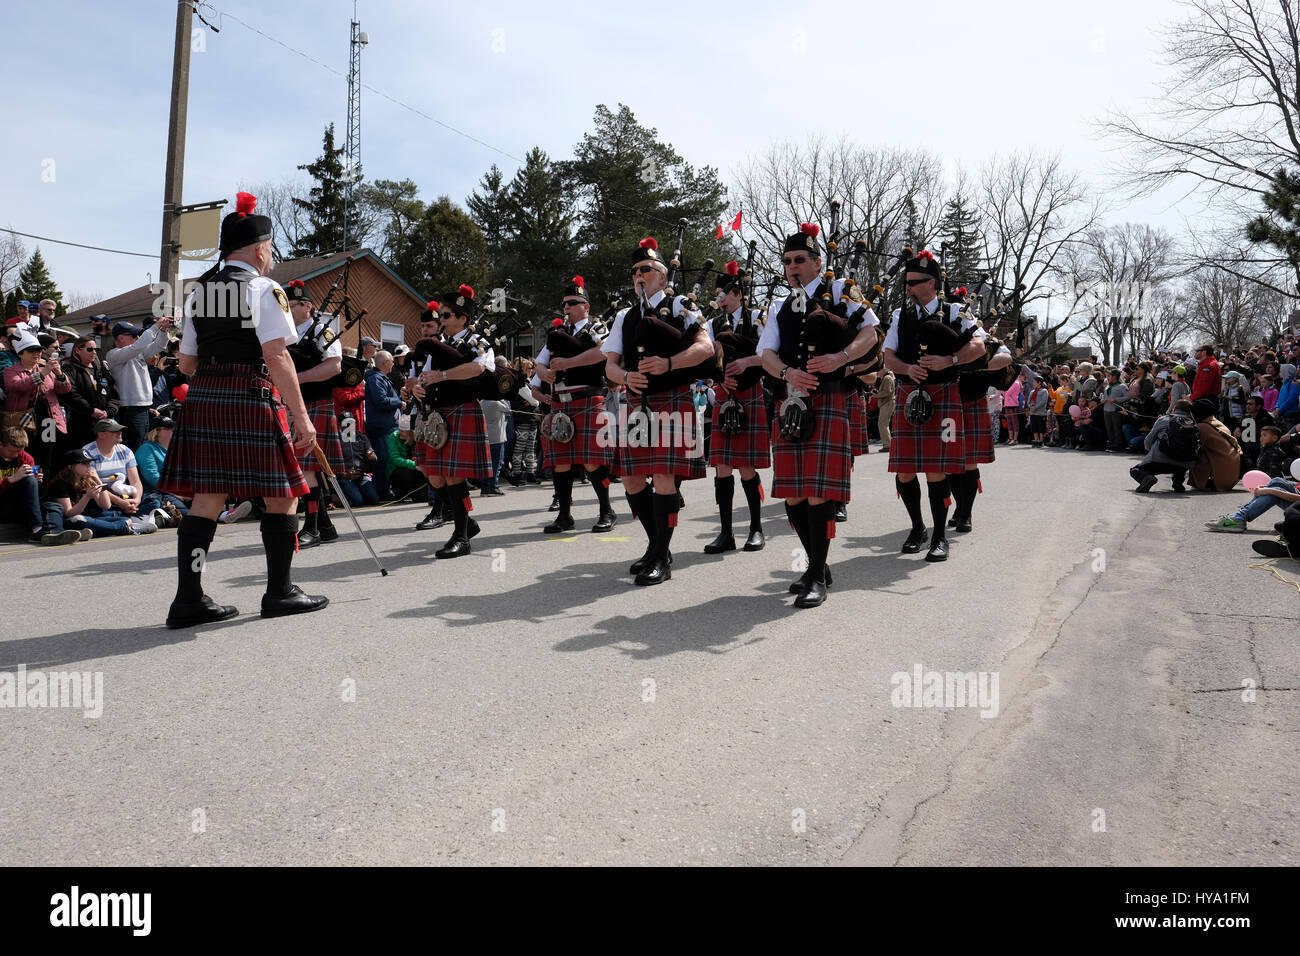 Stratford, Ontario, Canada, 2nd Apr, 2017. Stratford Police Pipe Band plays for thousands of people that gathered - Stock Image